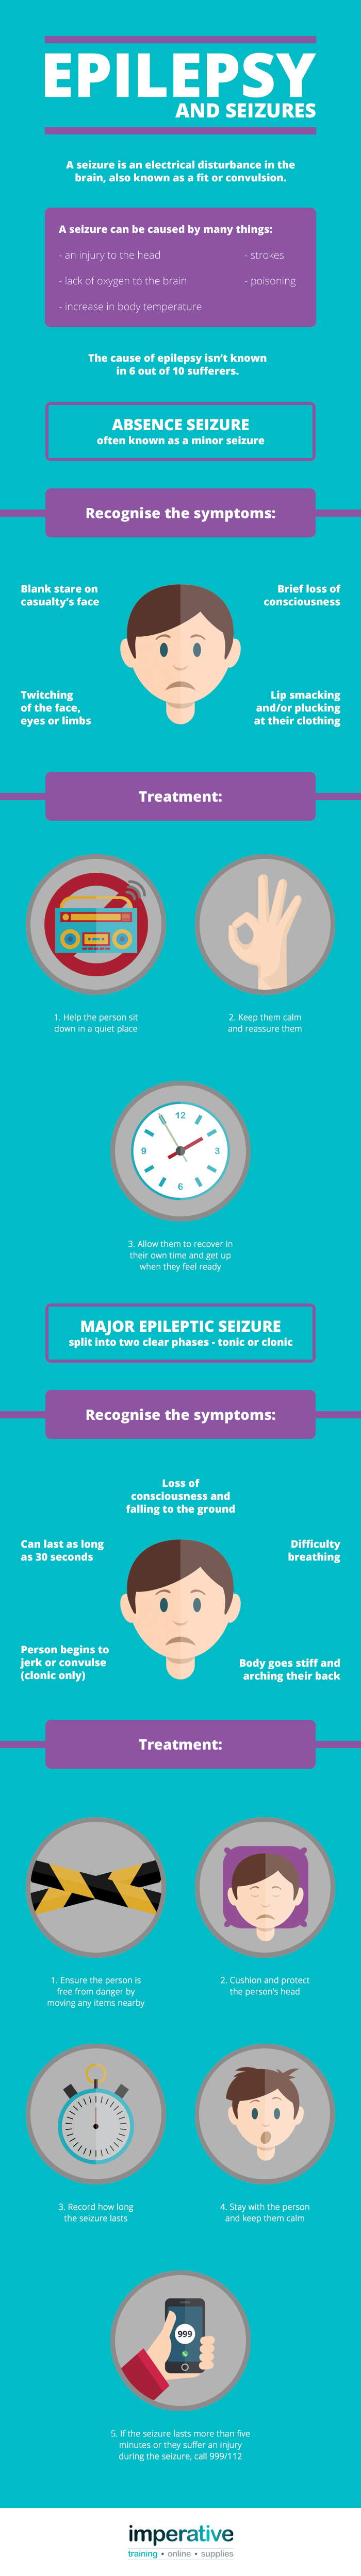 What to do when an epileptic fit occurs